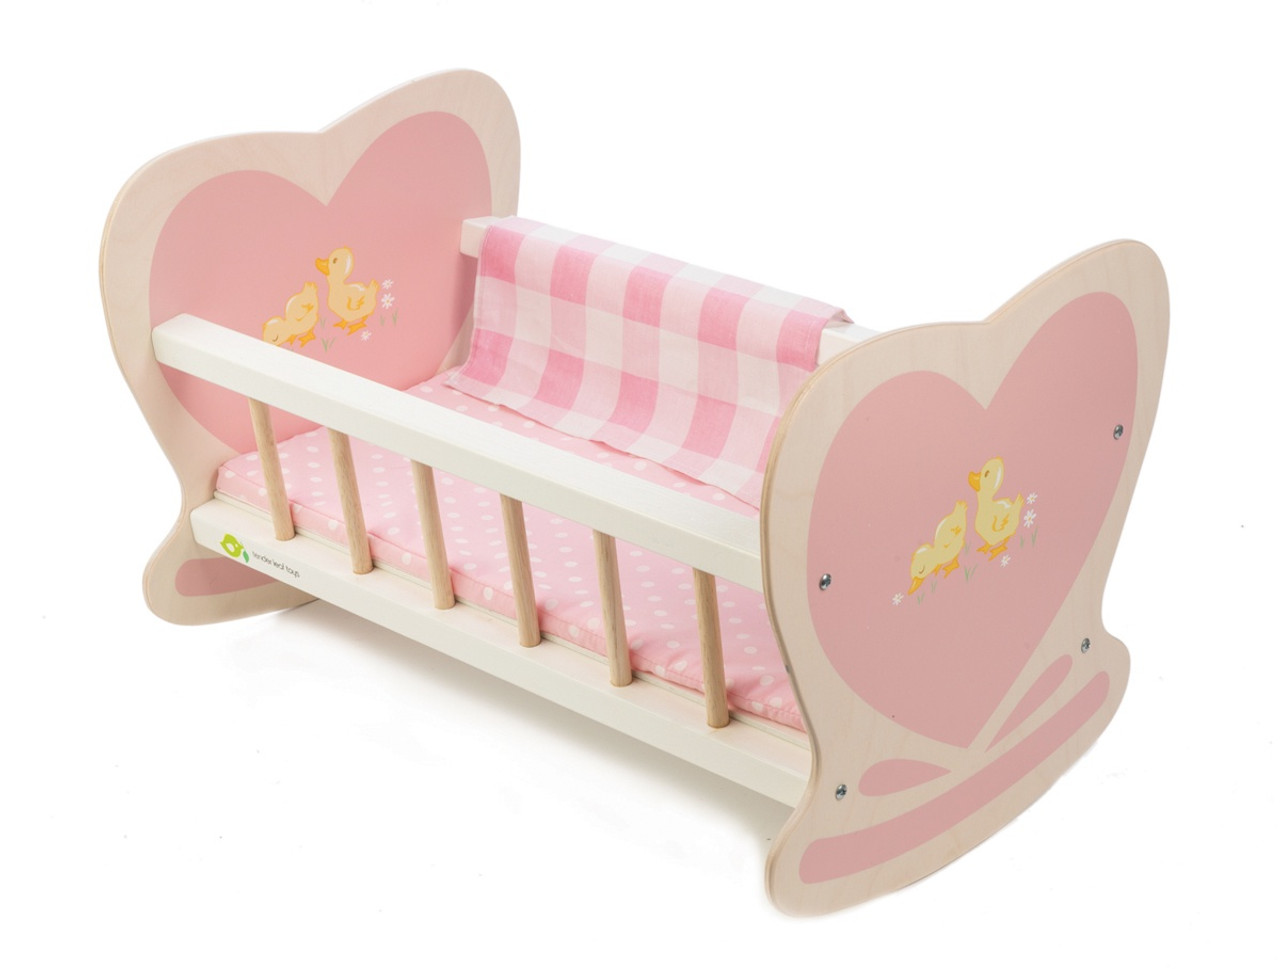 Tender Leaf Toys Sweetiepie Dooly Cot at Baby Barn Discounts Tender Leaf Toys Sweetiepie Dolly wooden cot bed is the cosiest place for your child's 'baby' to be gently rocked to sleep.